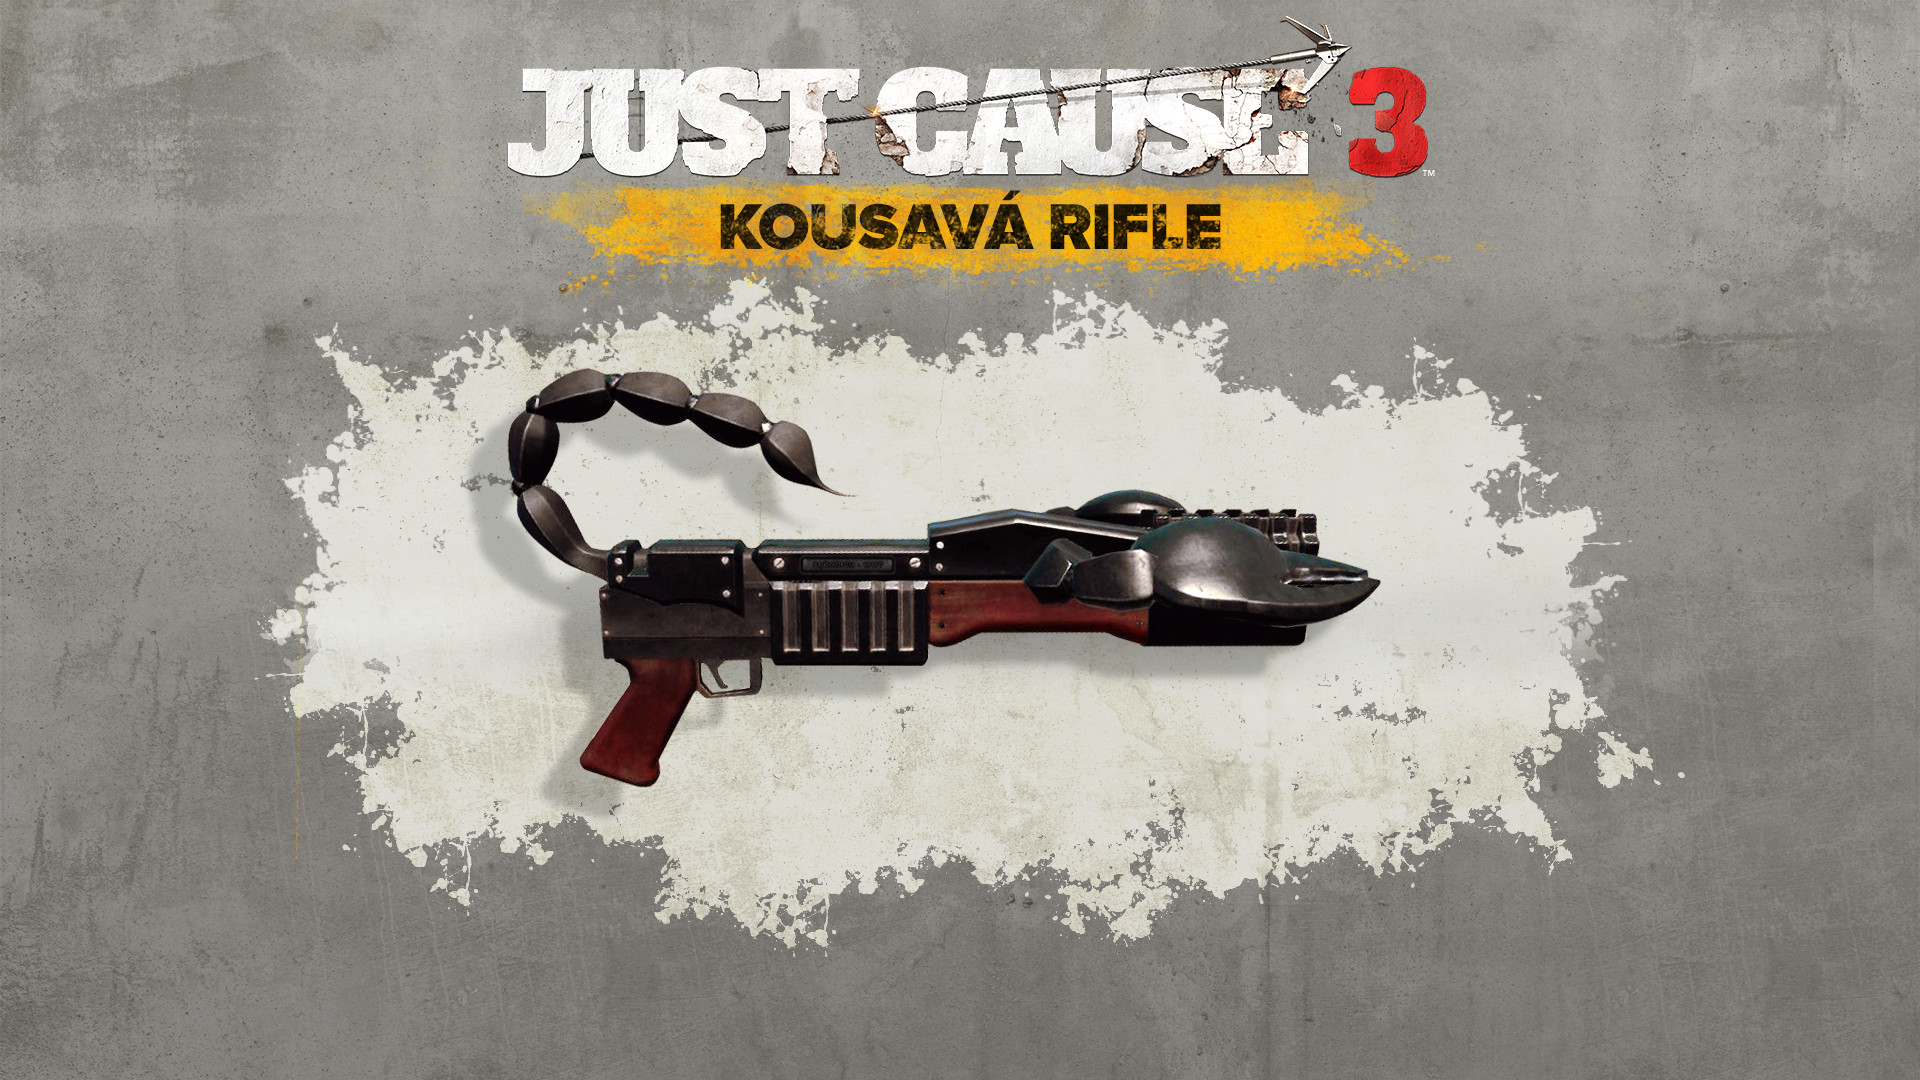 Just Cause 3 Kousav Rifle 2016 Promotional Art Mobygames Sony Ps4 Gold Edition Other